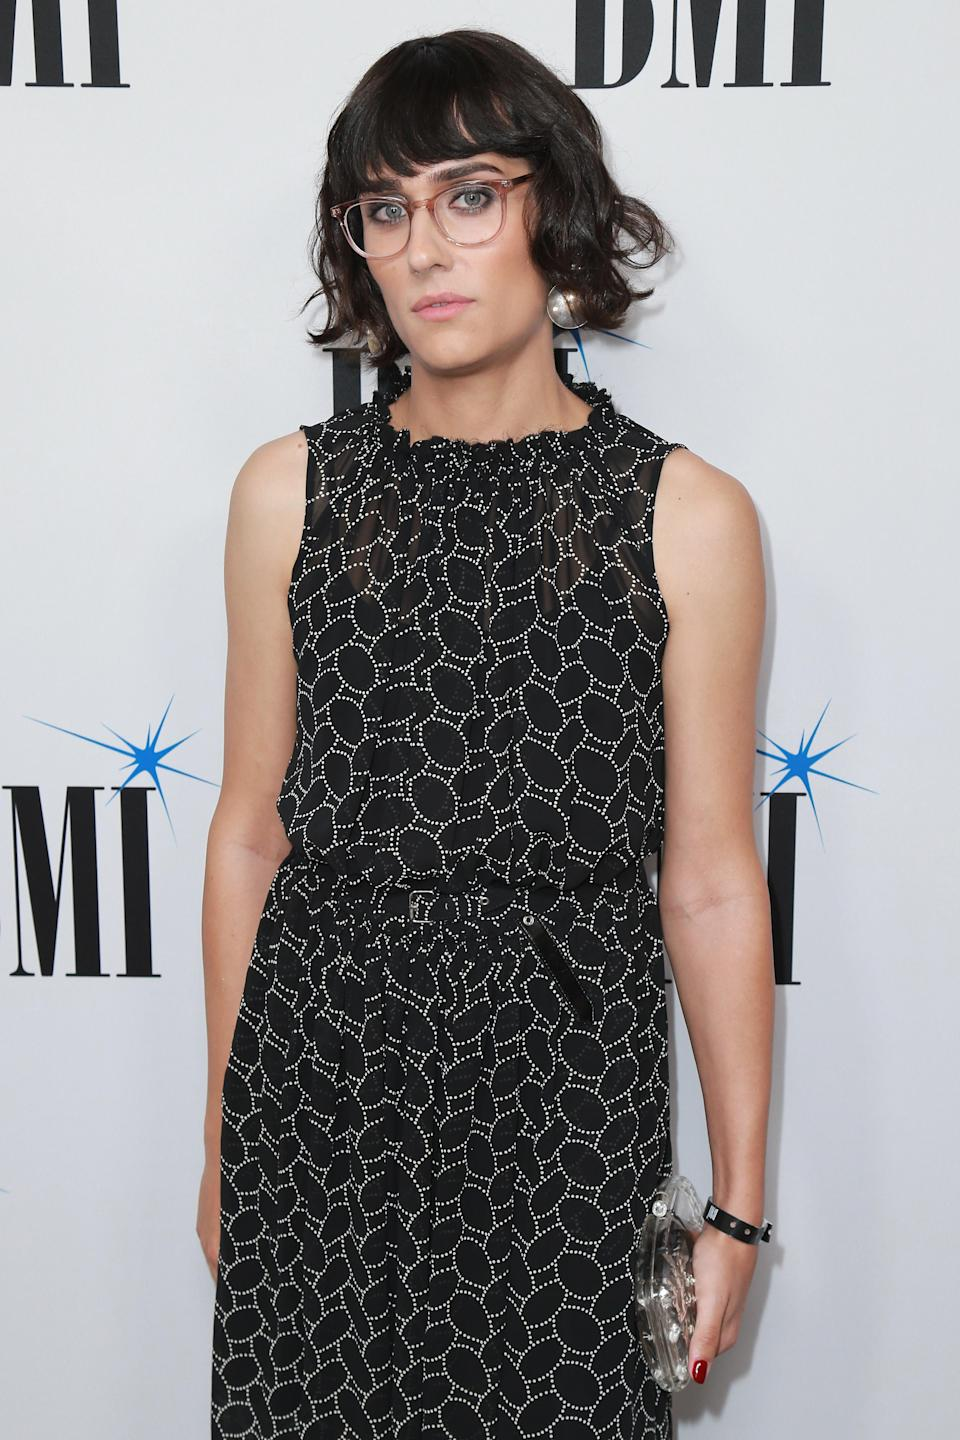 Teddy Geiger at the Beverly Wilshire Four Seasons Hotel on May 8 in Beverly Hills, Calif. (Photo: Getty Images)